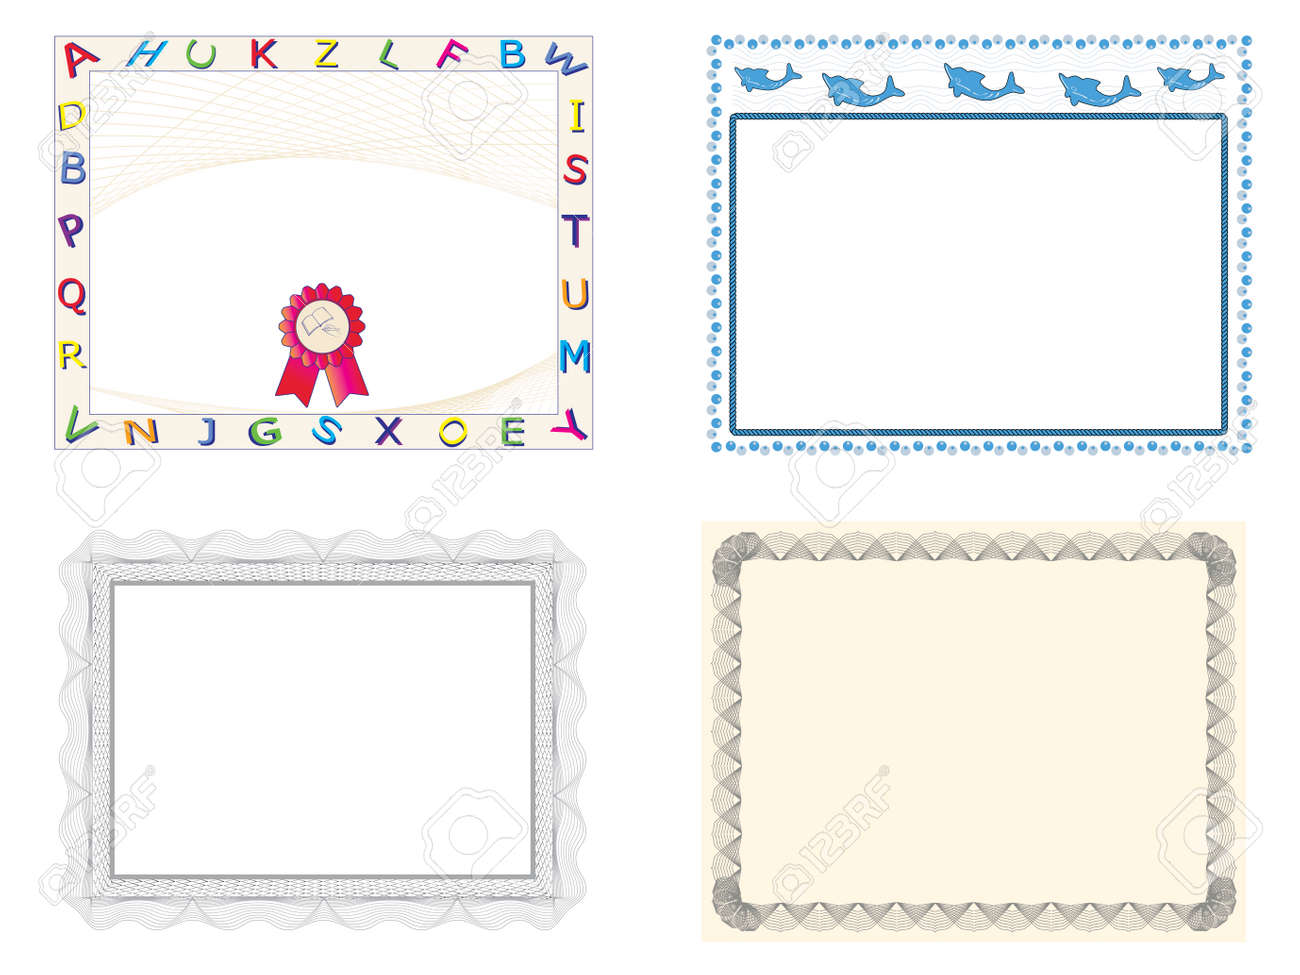 Four Certificate Of Completion Templates Royalty Free Cliparts ...